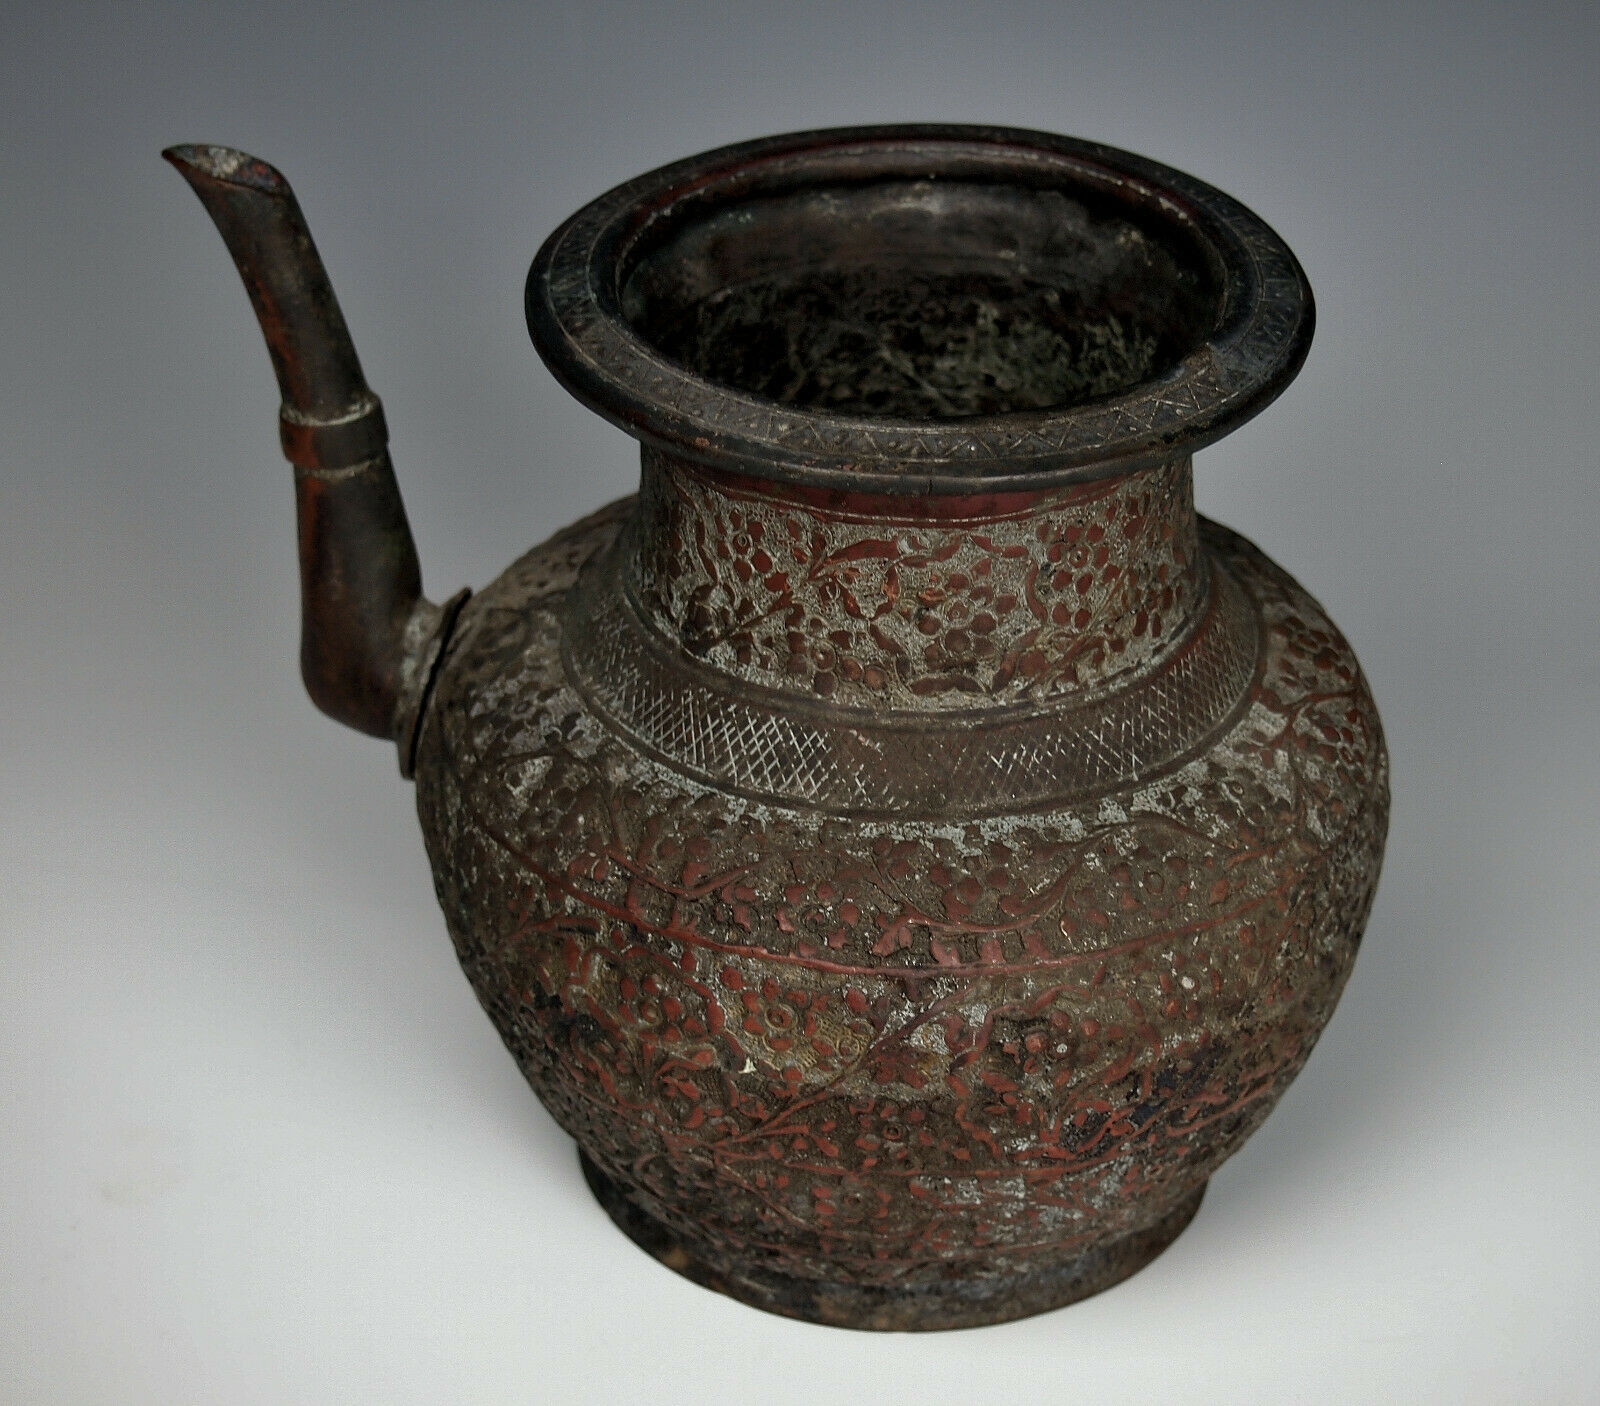 1700s MUGHAL HAND HAMMERED PITCHER India Indo Persian Lota Pot Fine Antique Ewer - $625.00